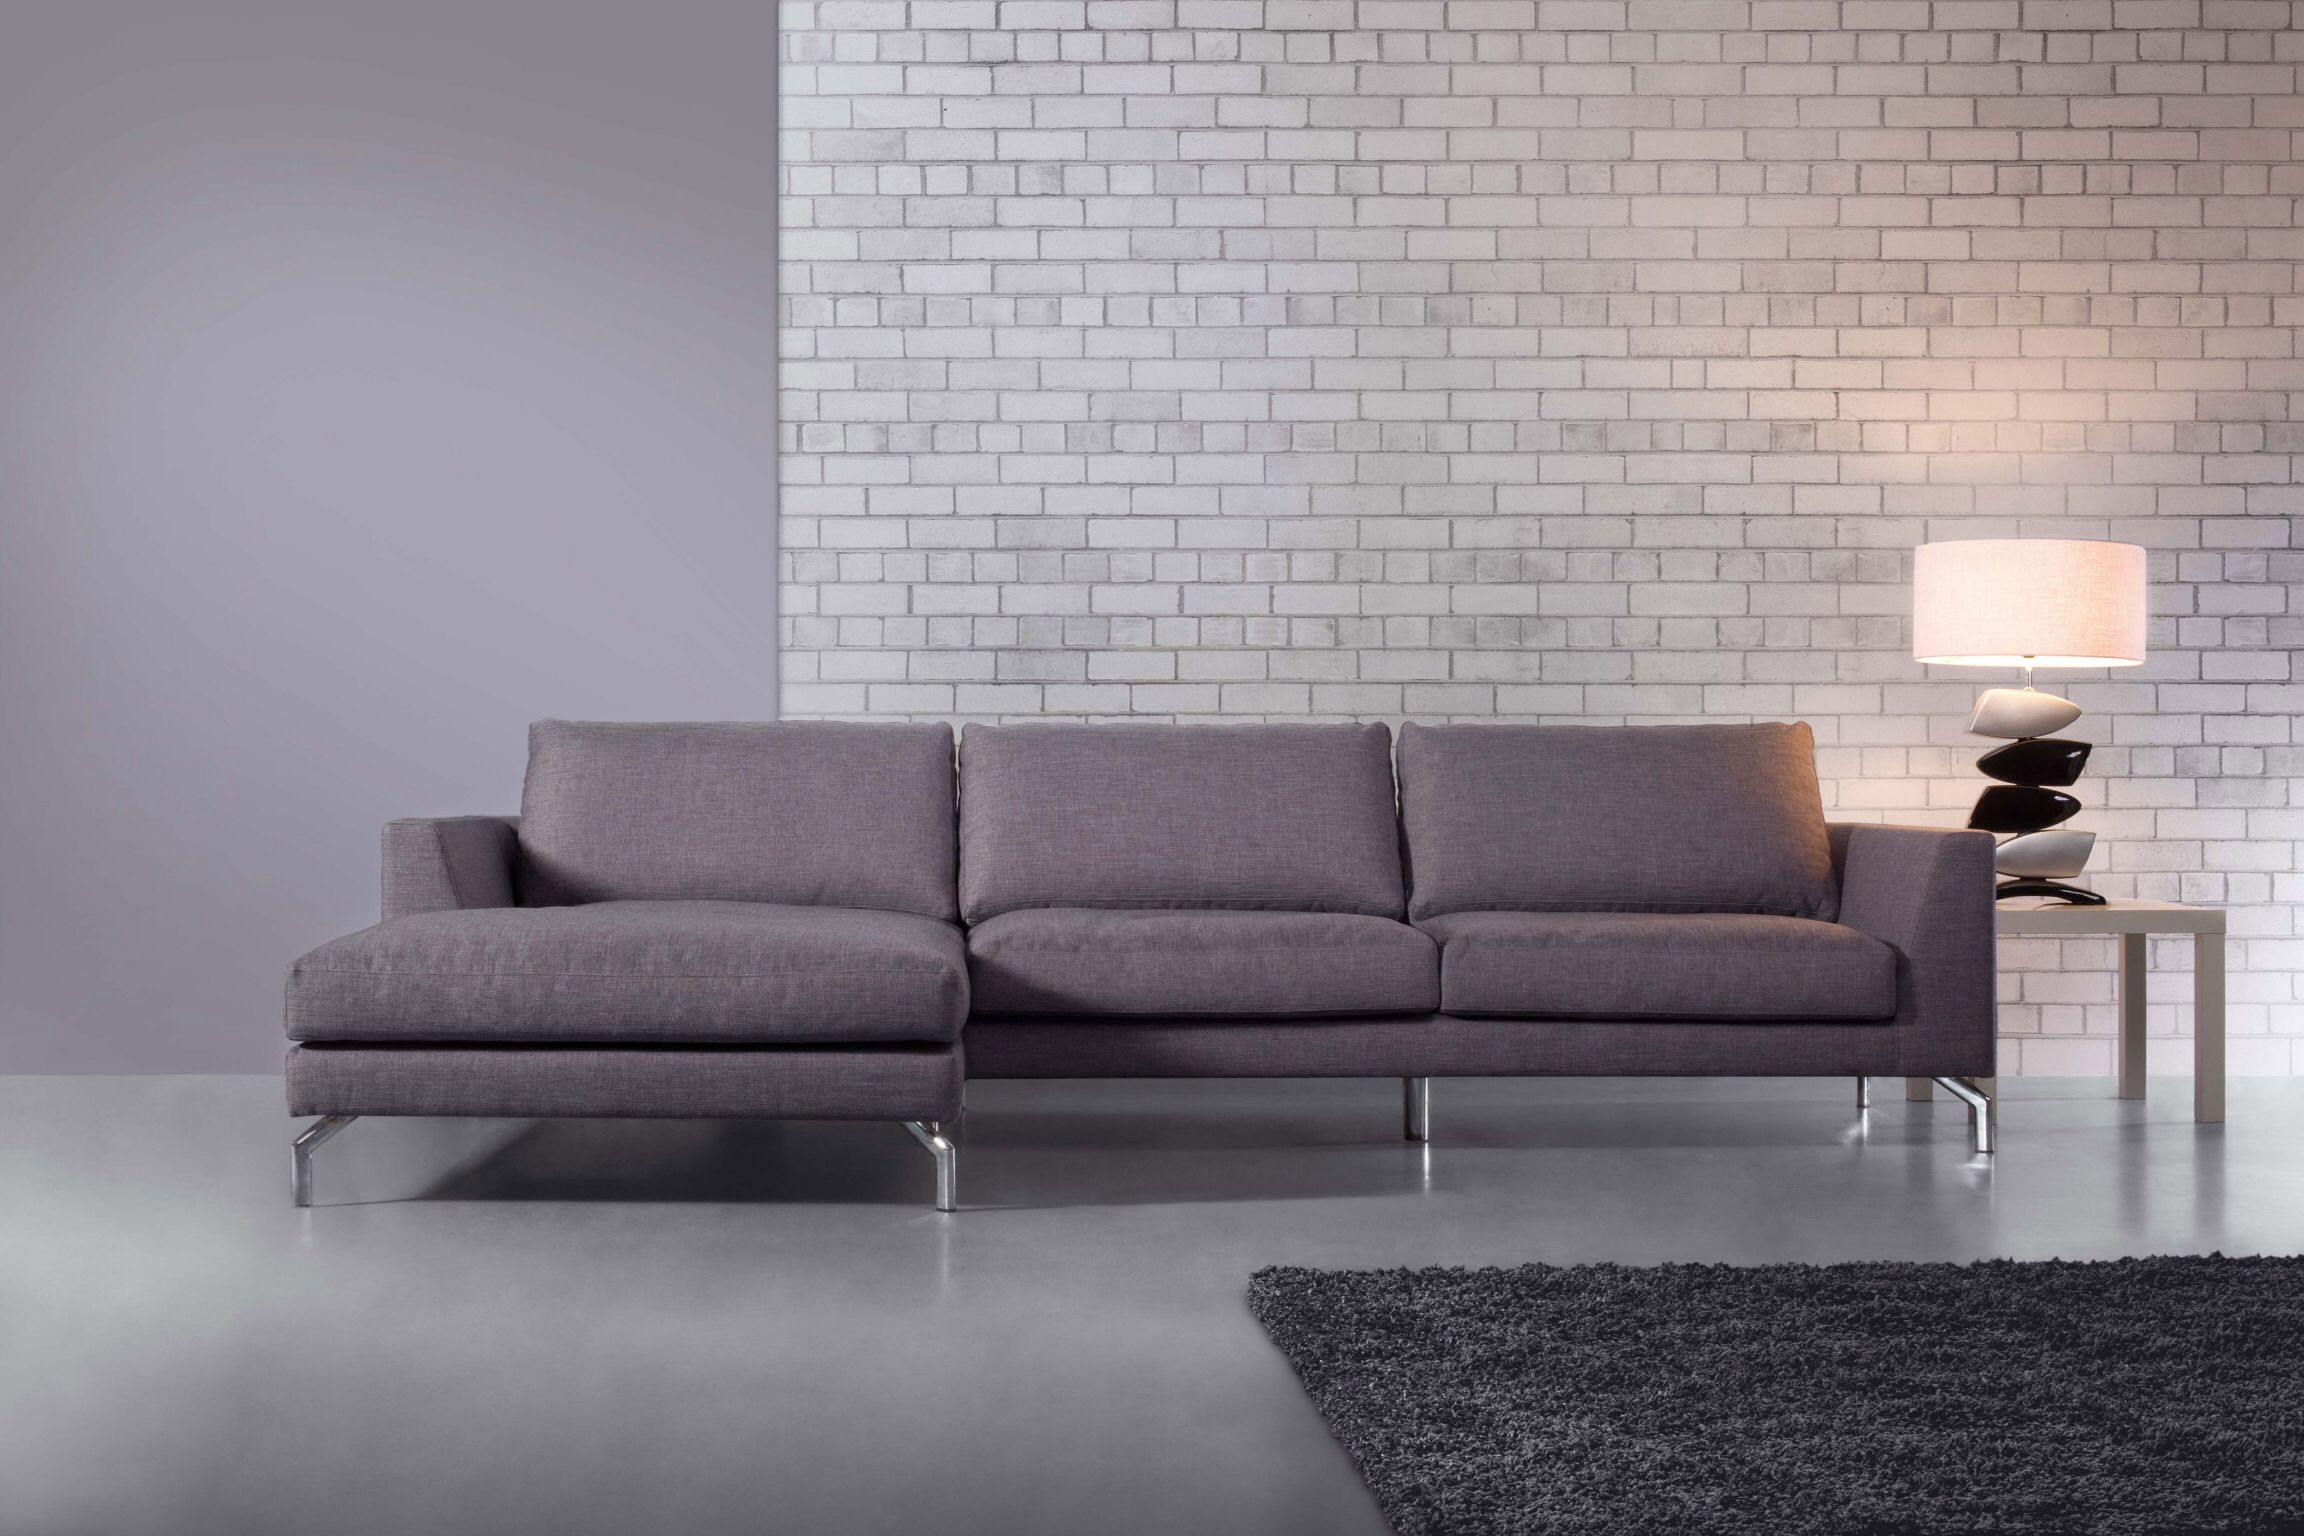 Ss1 Contemporary Chaise End Sofa Metal Legs Corner Sofa Living Room Corner Sofa Set Furniture